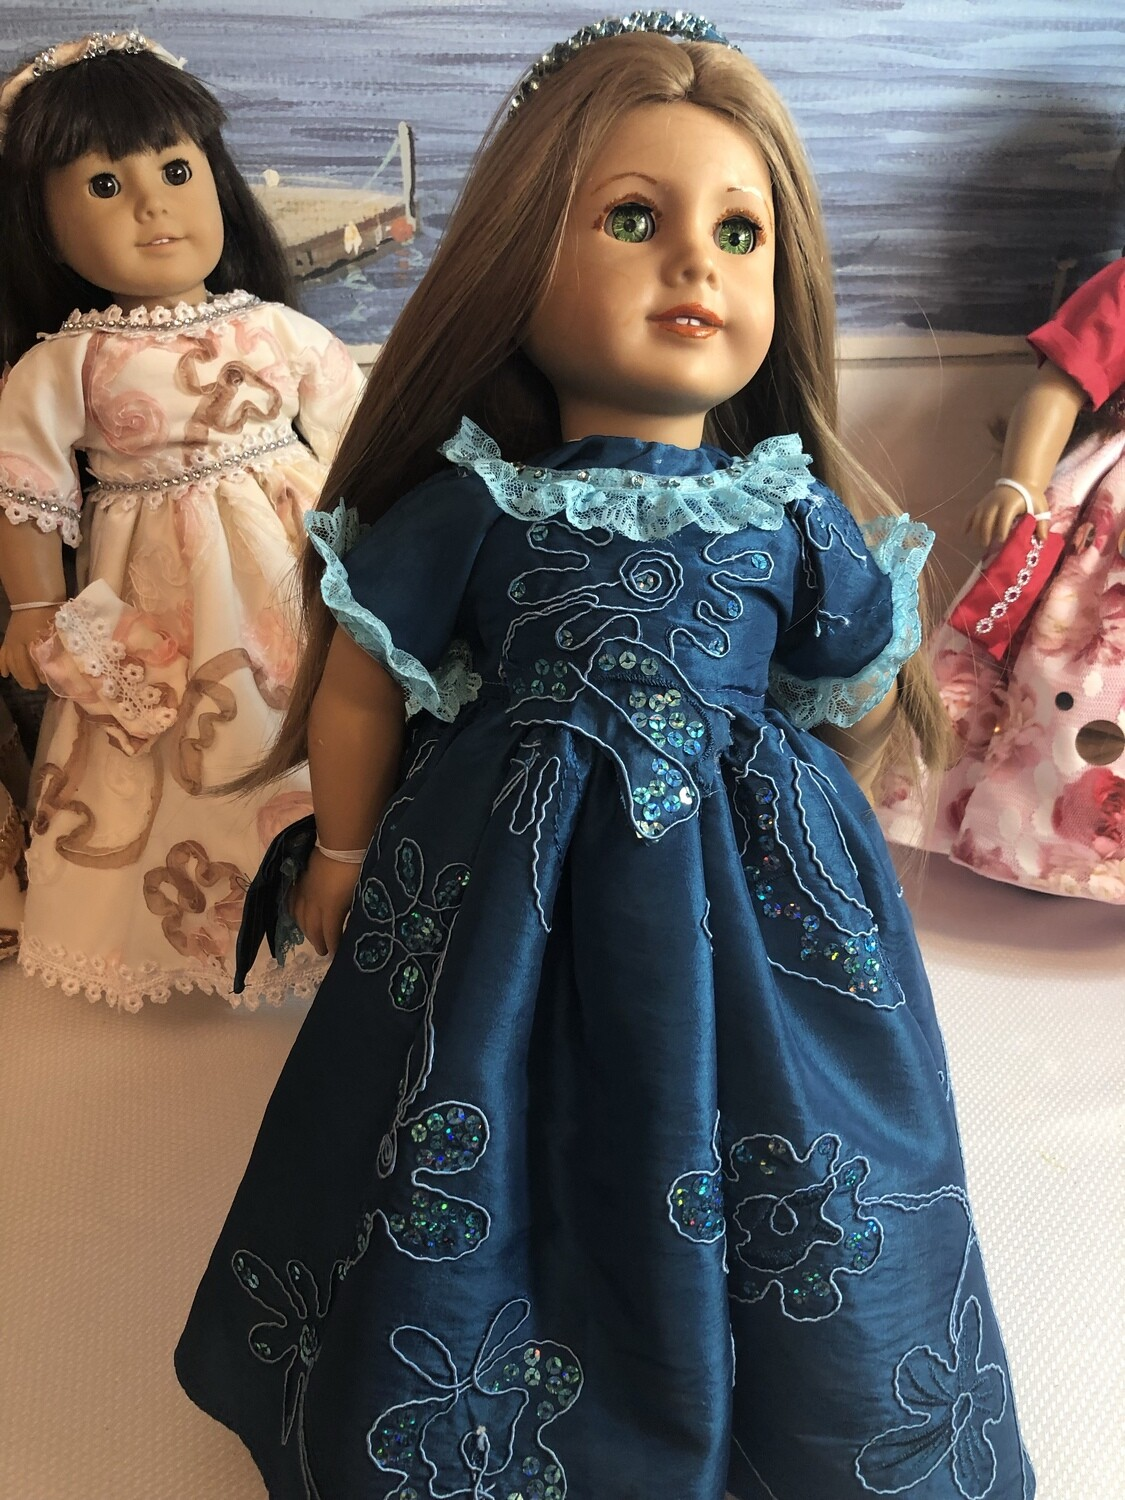 Lidia's Dolls Saving the Planet by Recycling Plastic Dolls